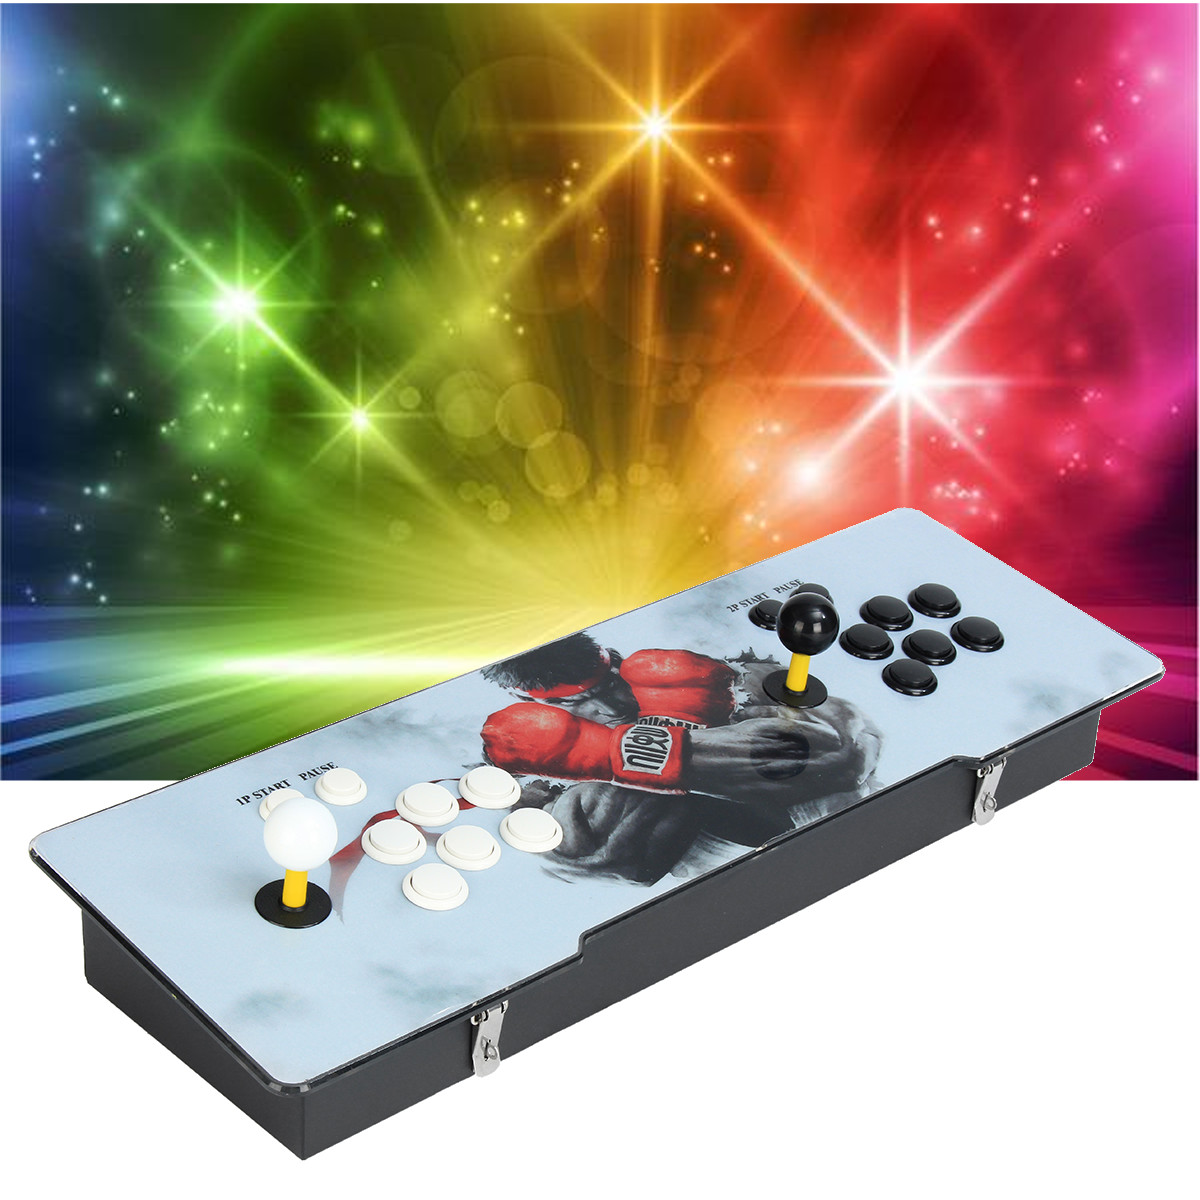 Pandorabox 5S 999 In 1 Retro Video Games Double Stick Dual Players